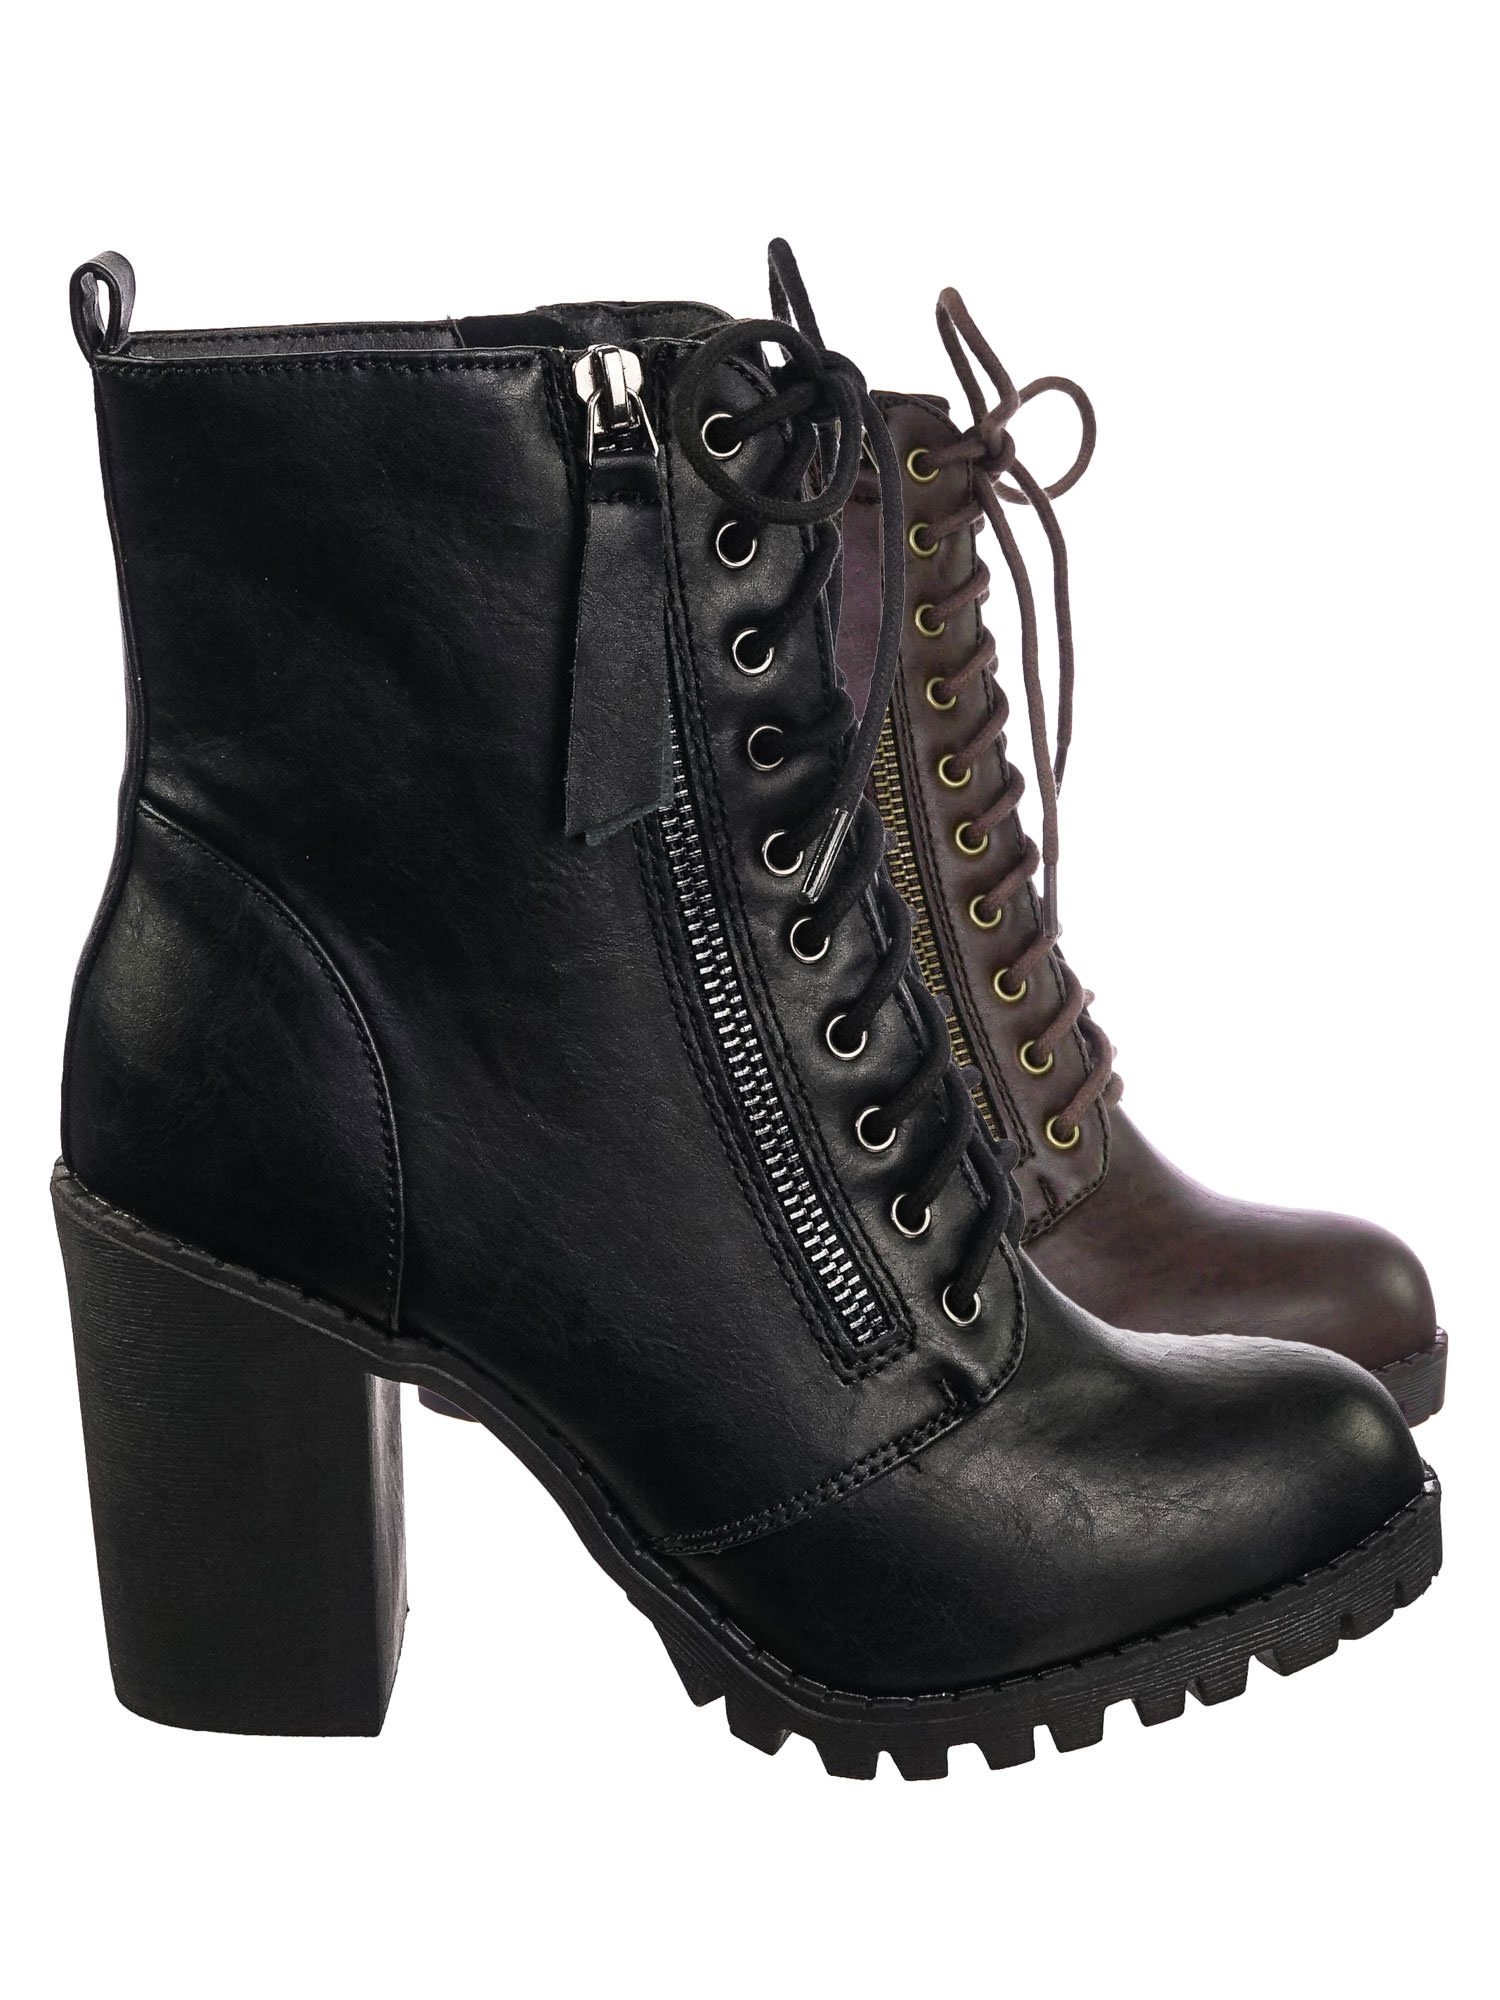 Malia By Soda, Mil. Lace Up Comb. Ankle Boot On Chunky Block Heel Lug Sole Bootie by Soda